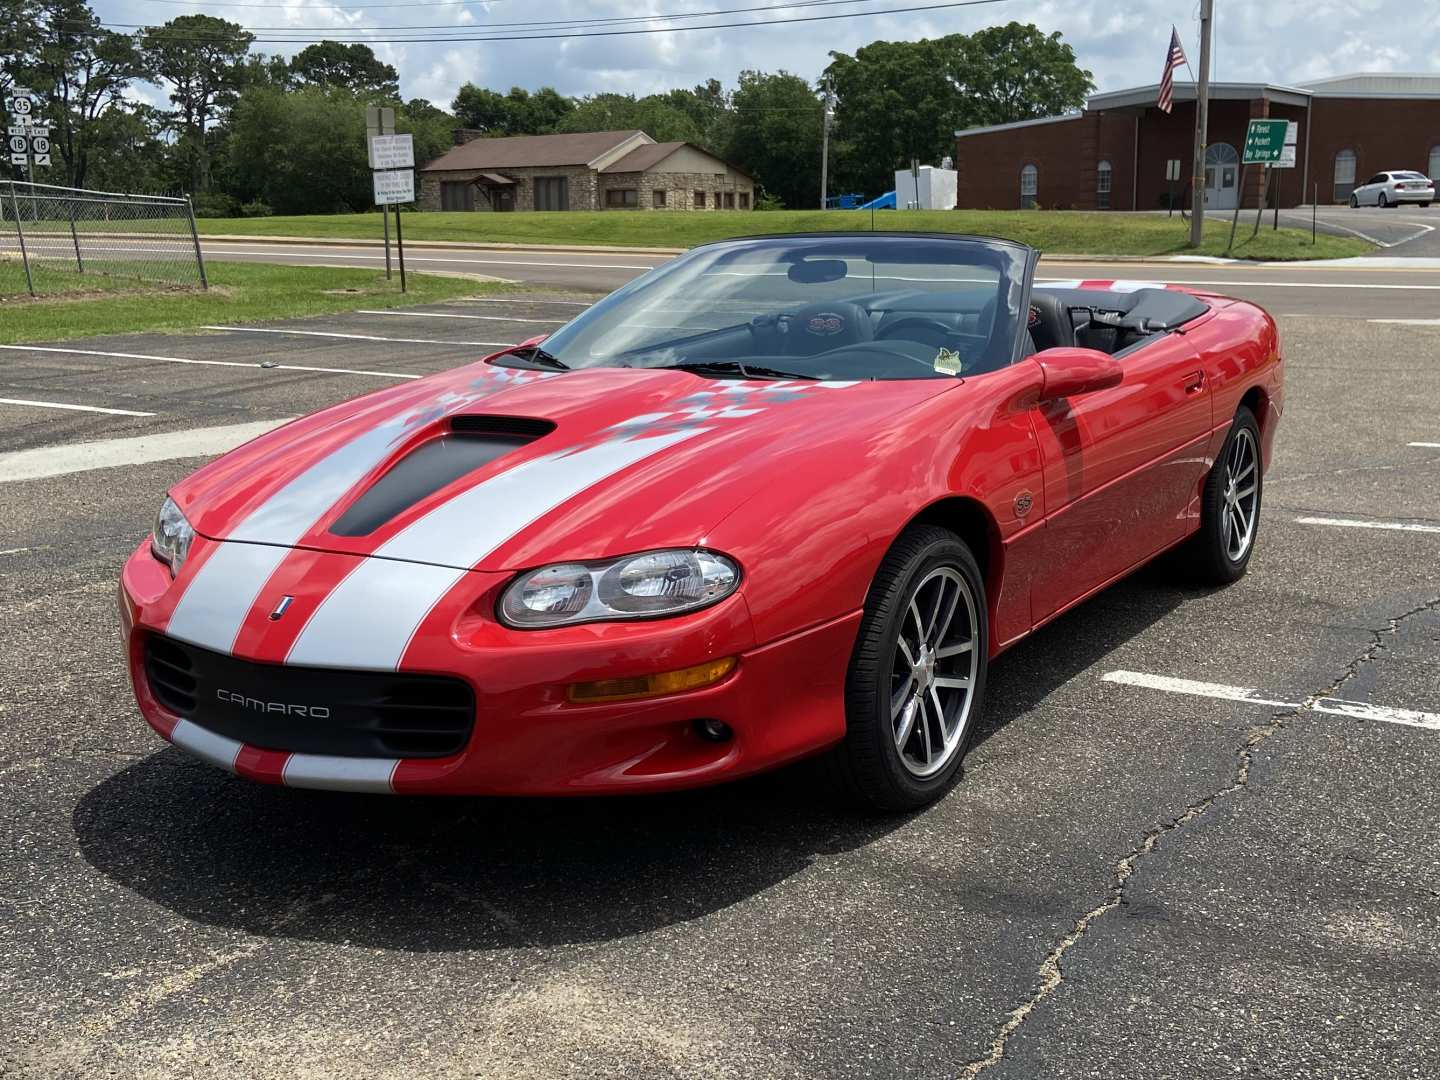 2002 chevrolet camaro z28 for sale at vicari auctions